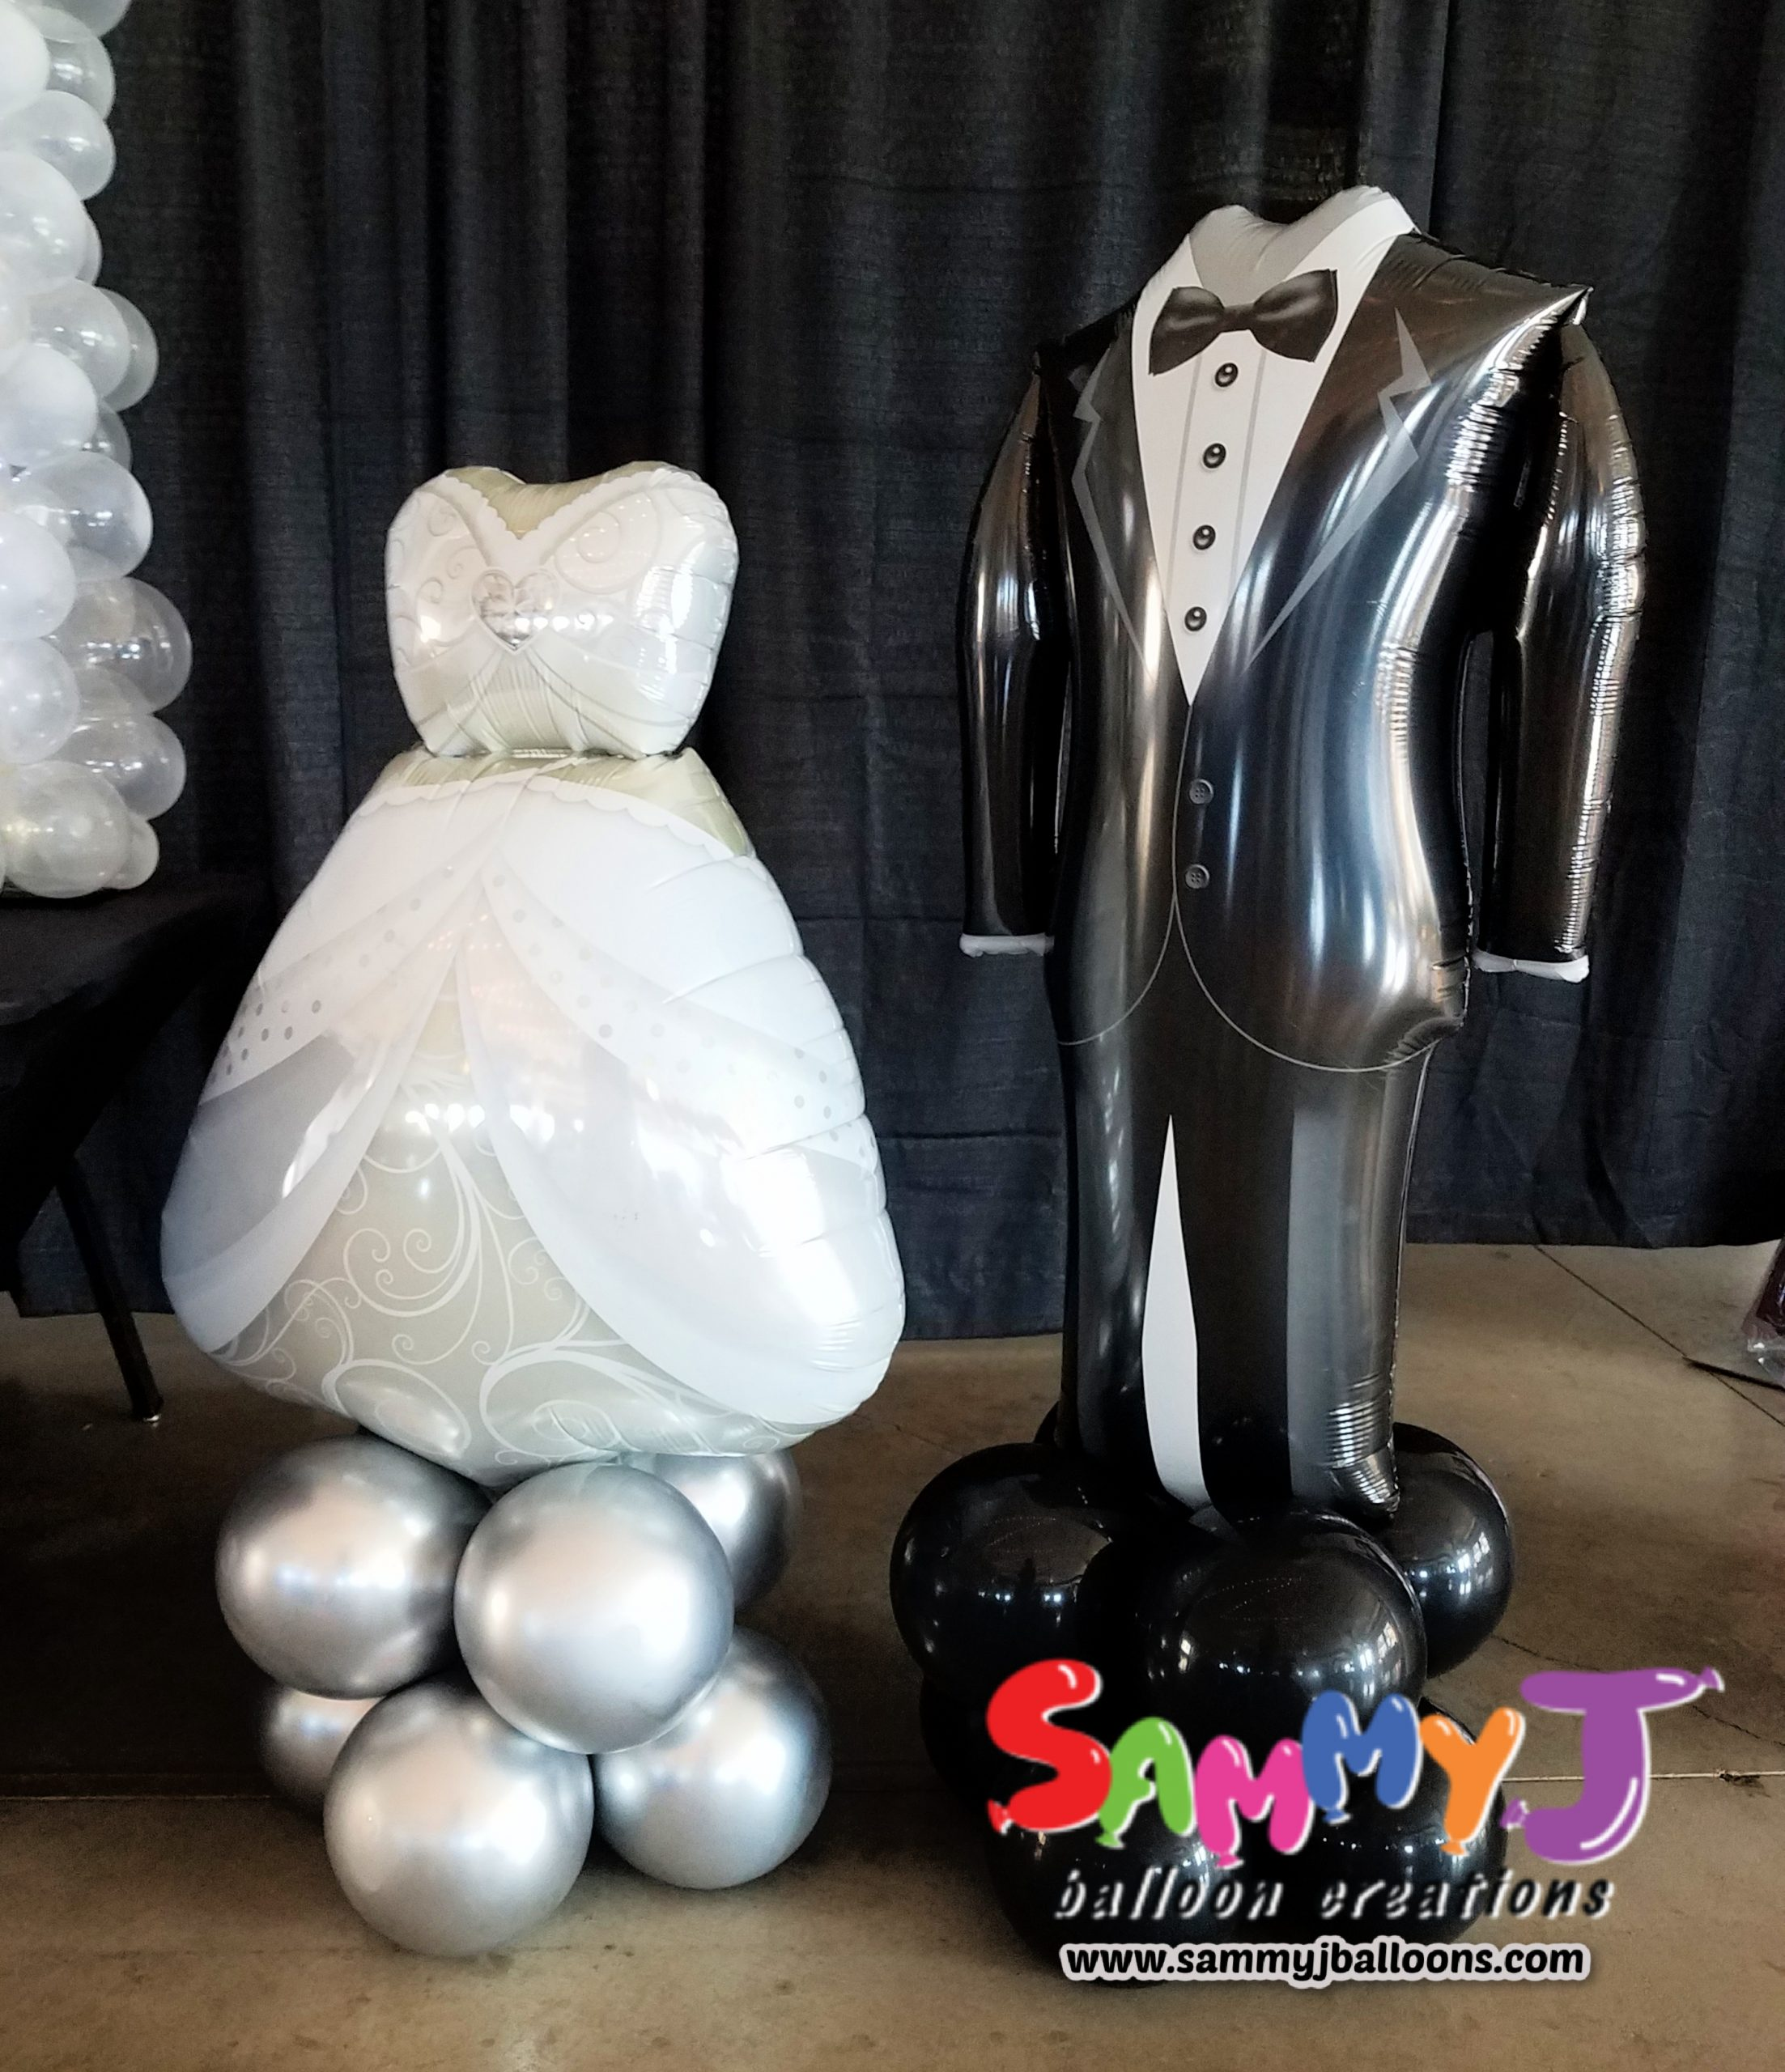 SAMMY J Balloon Creations st louis balloons bride groom wedding